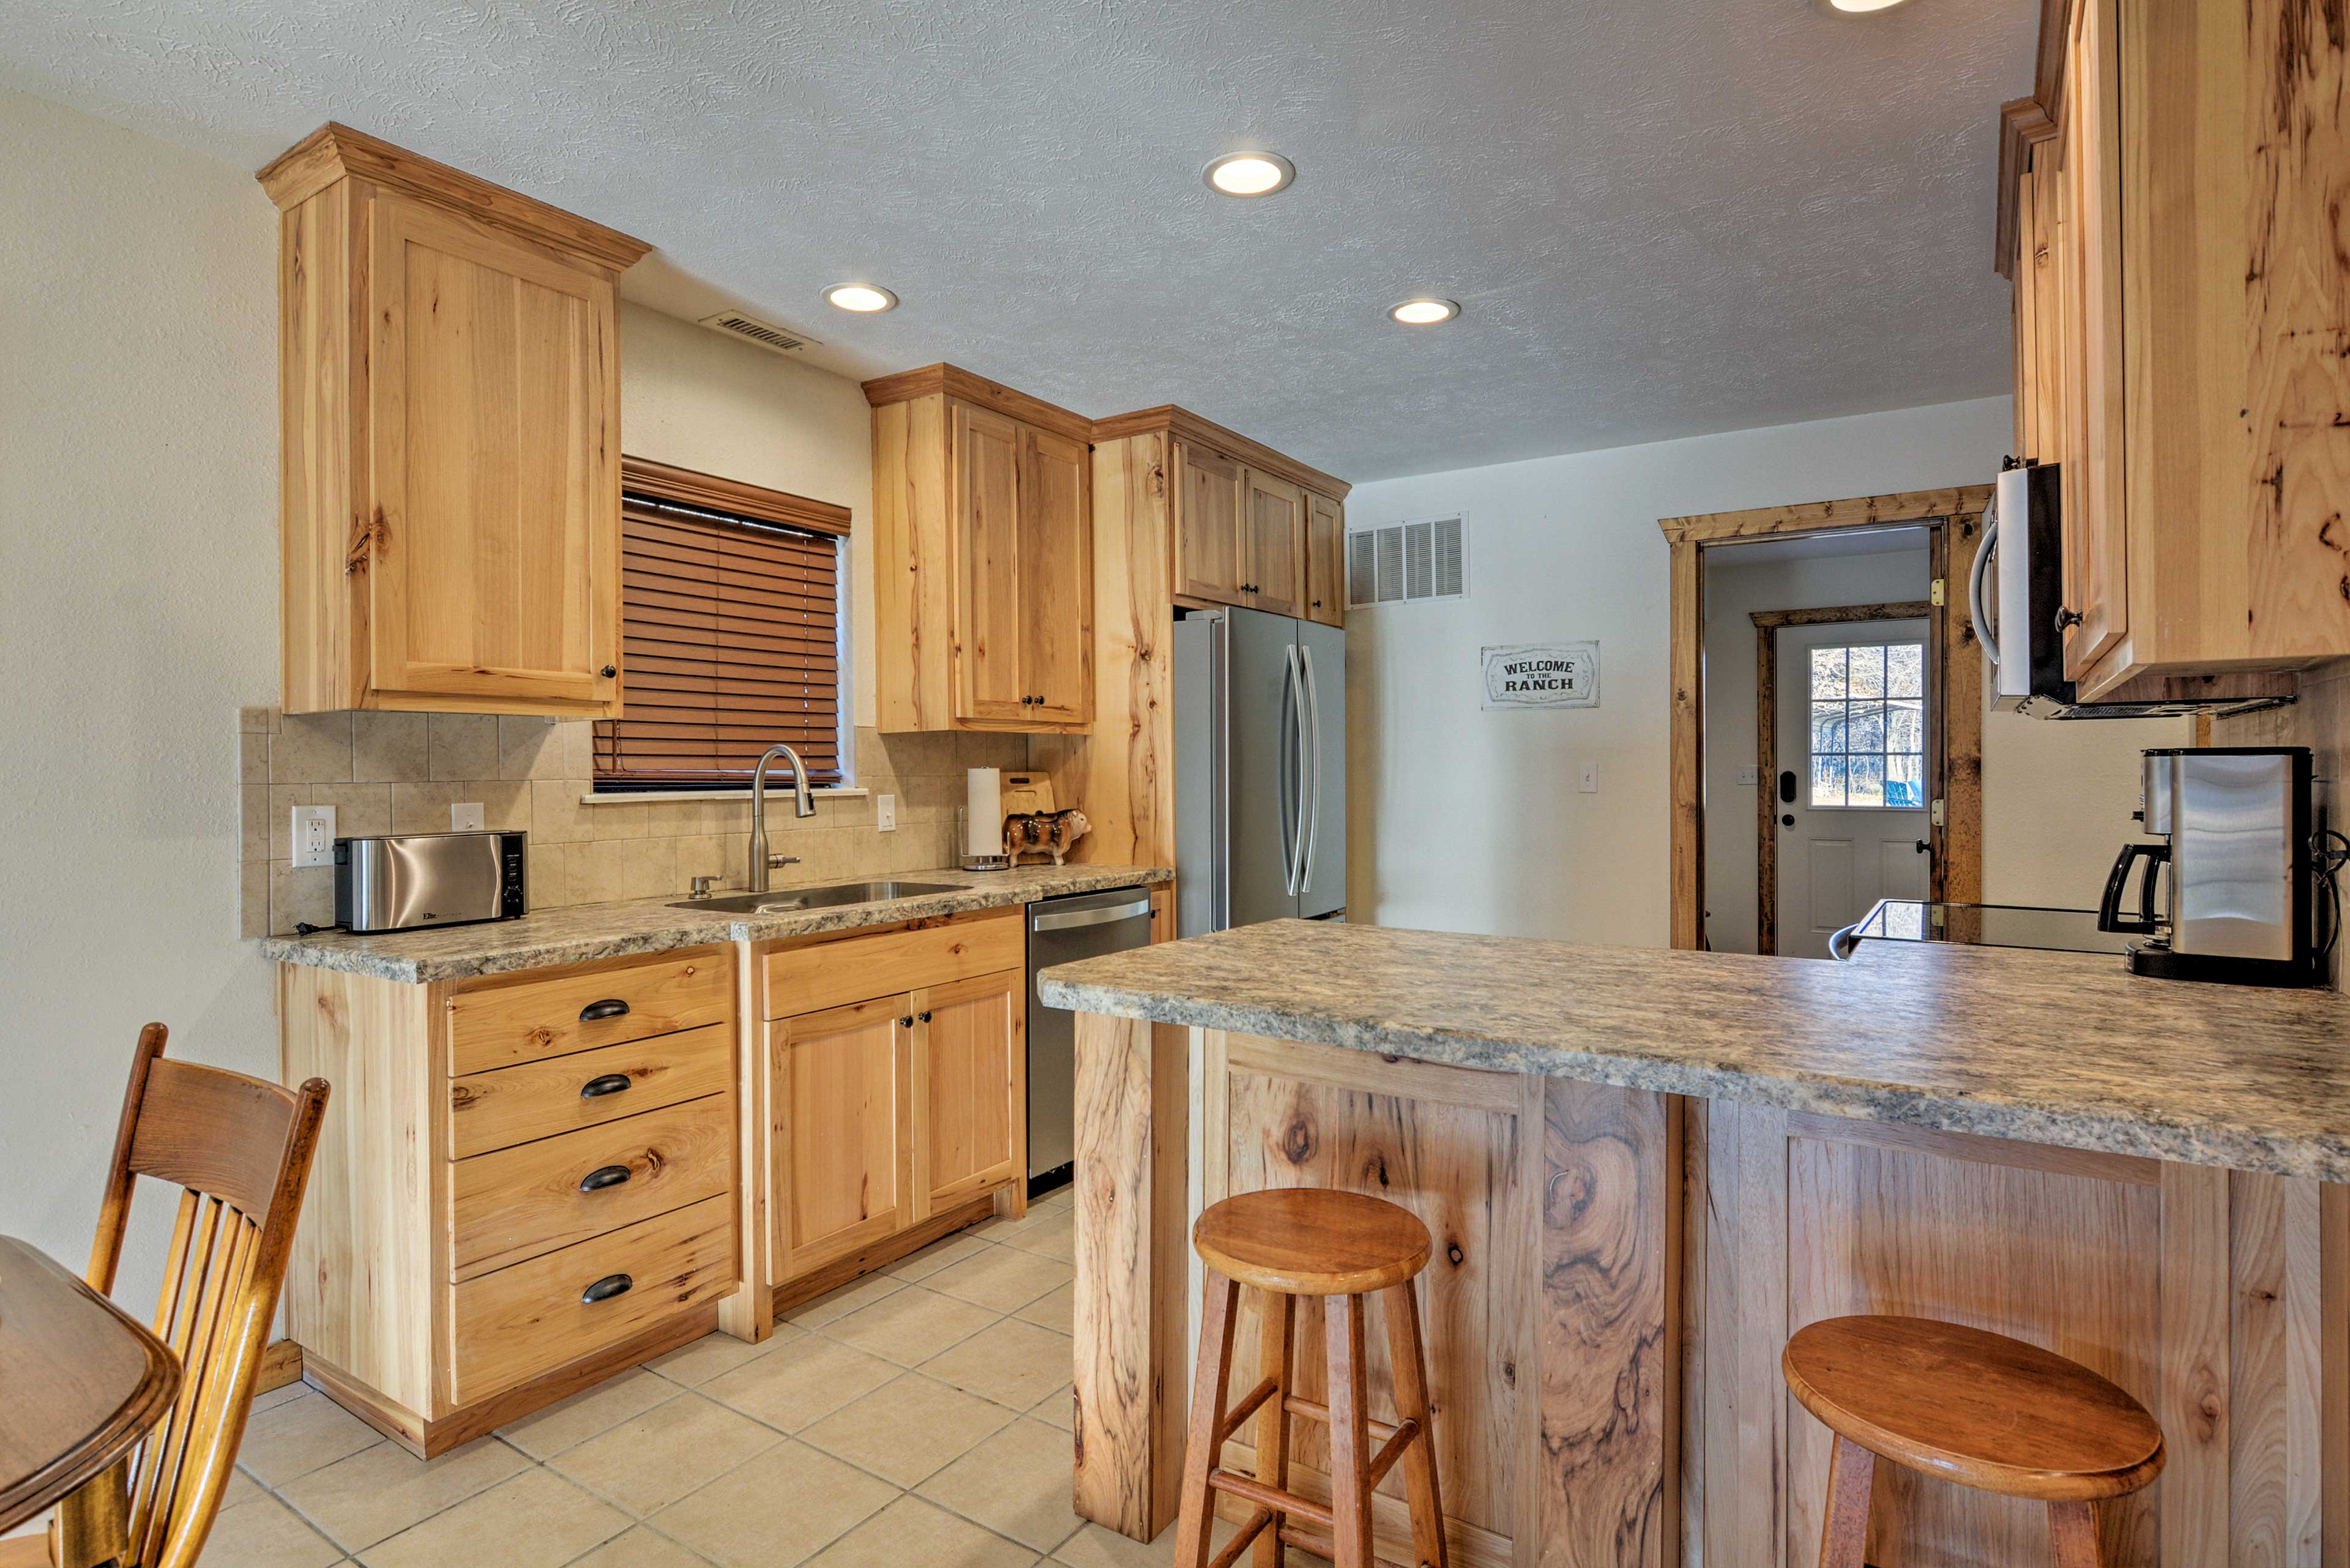 Channel your inner chef in the fully equipped kitchen.